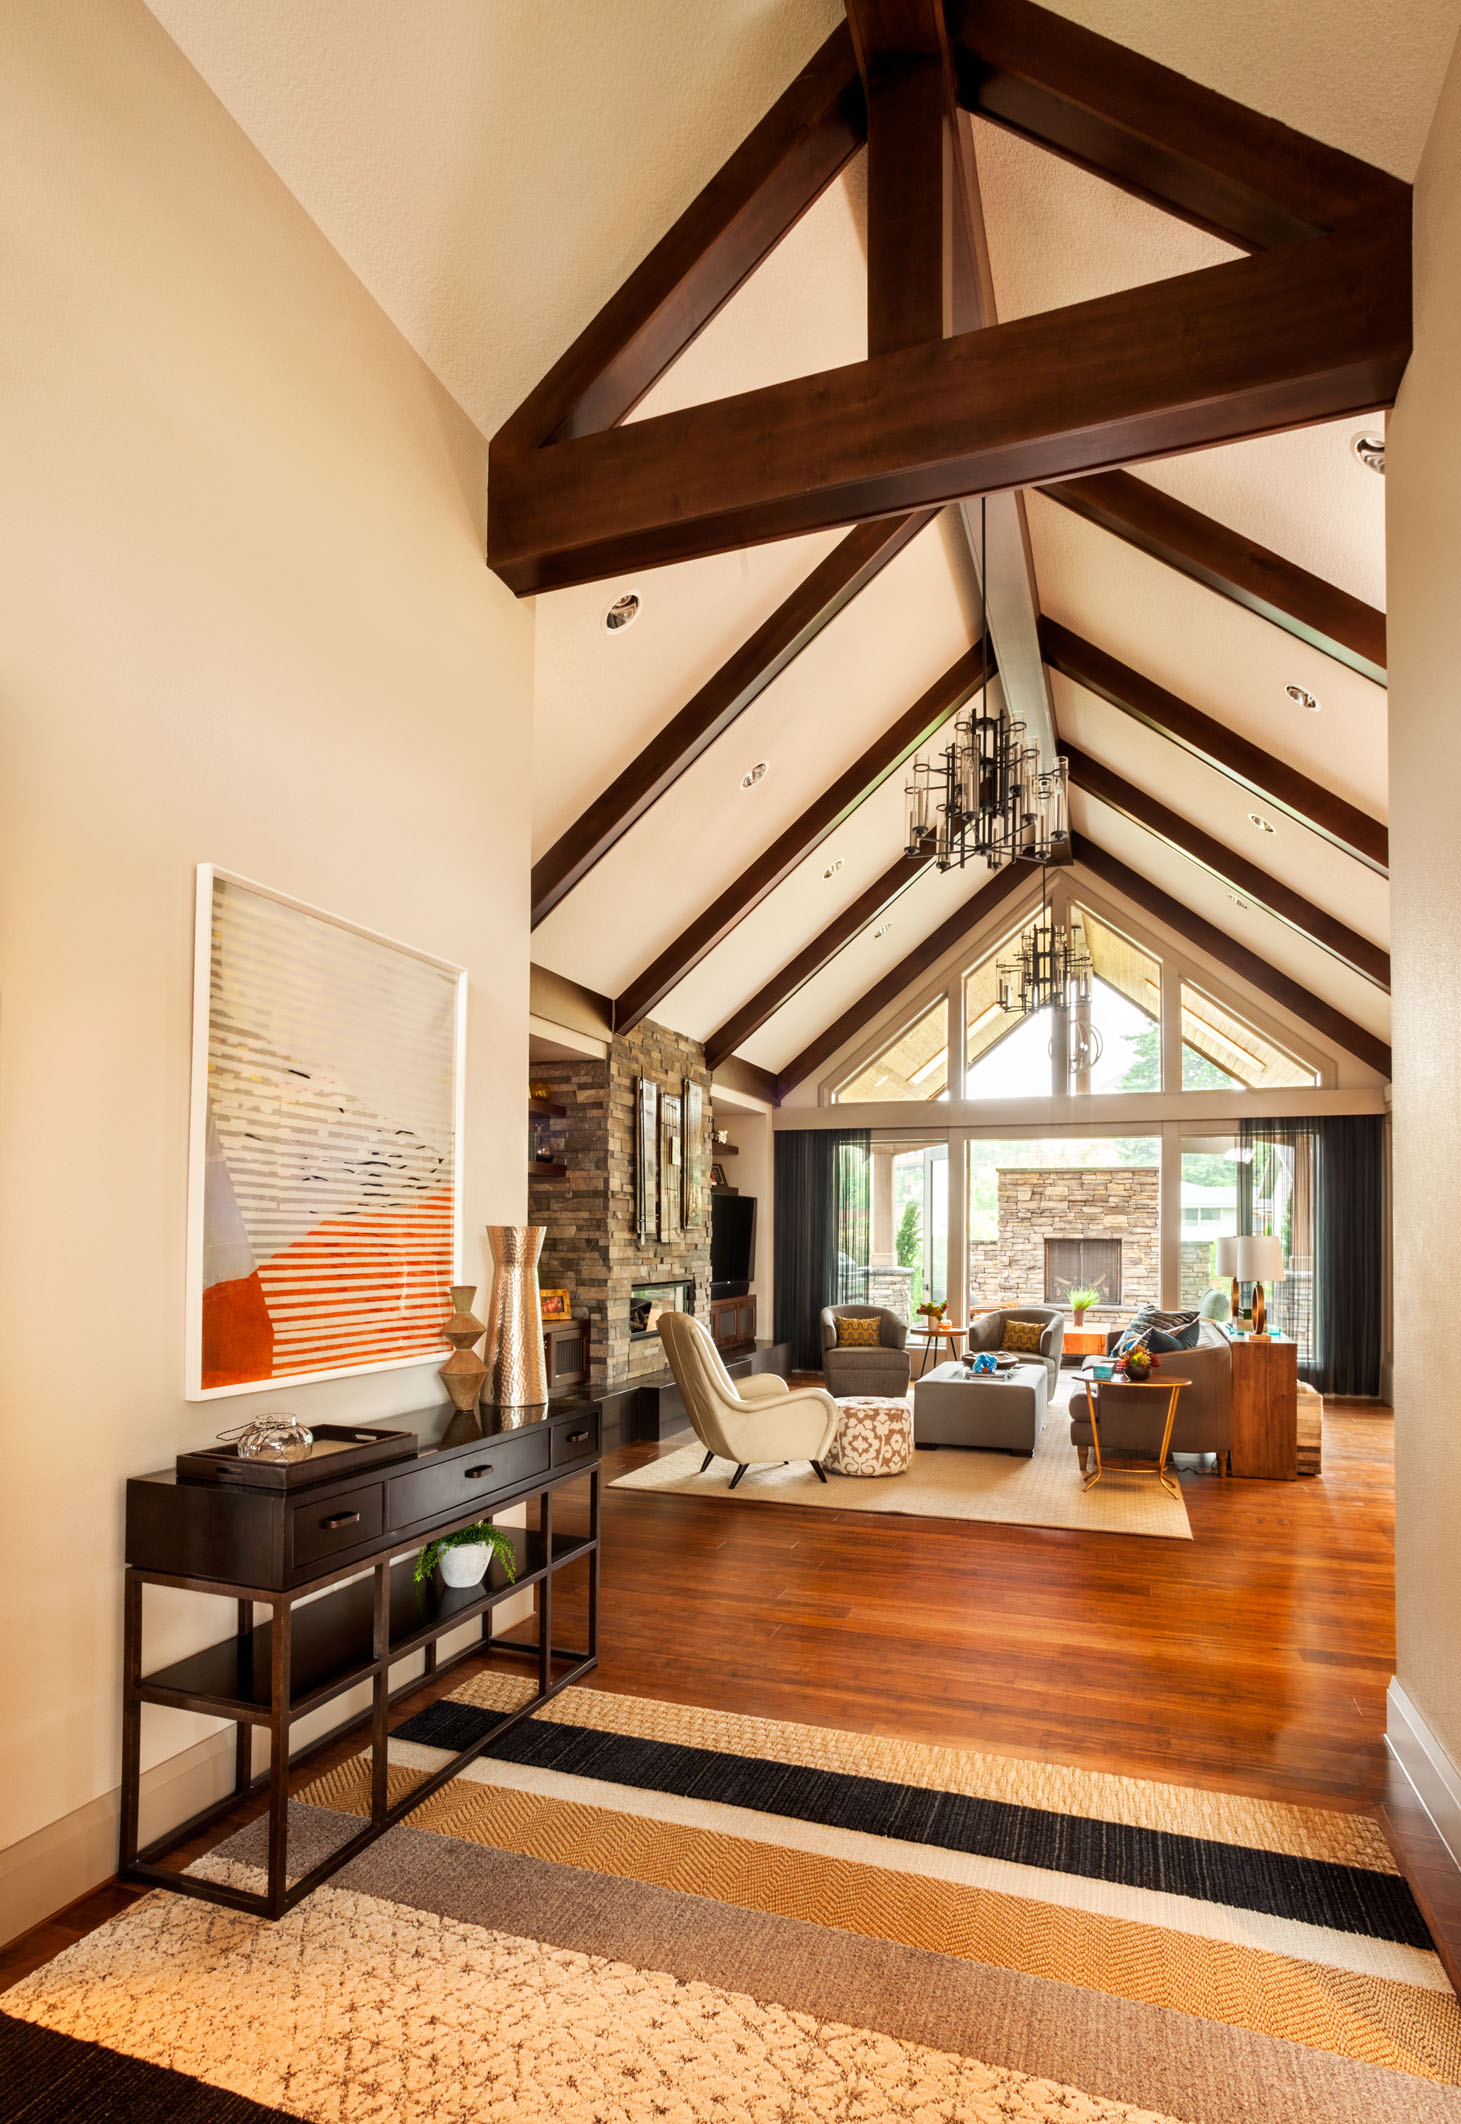 rustic interior design, exposed beamed living rooms, pacific northwest interiors